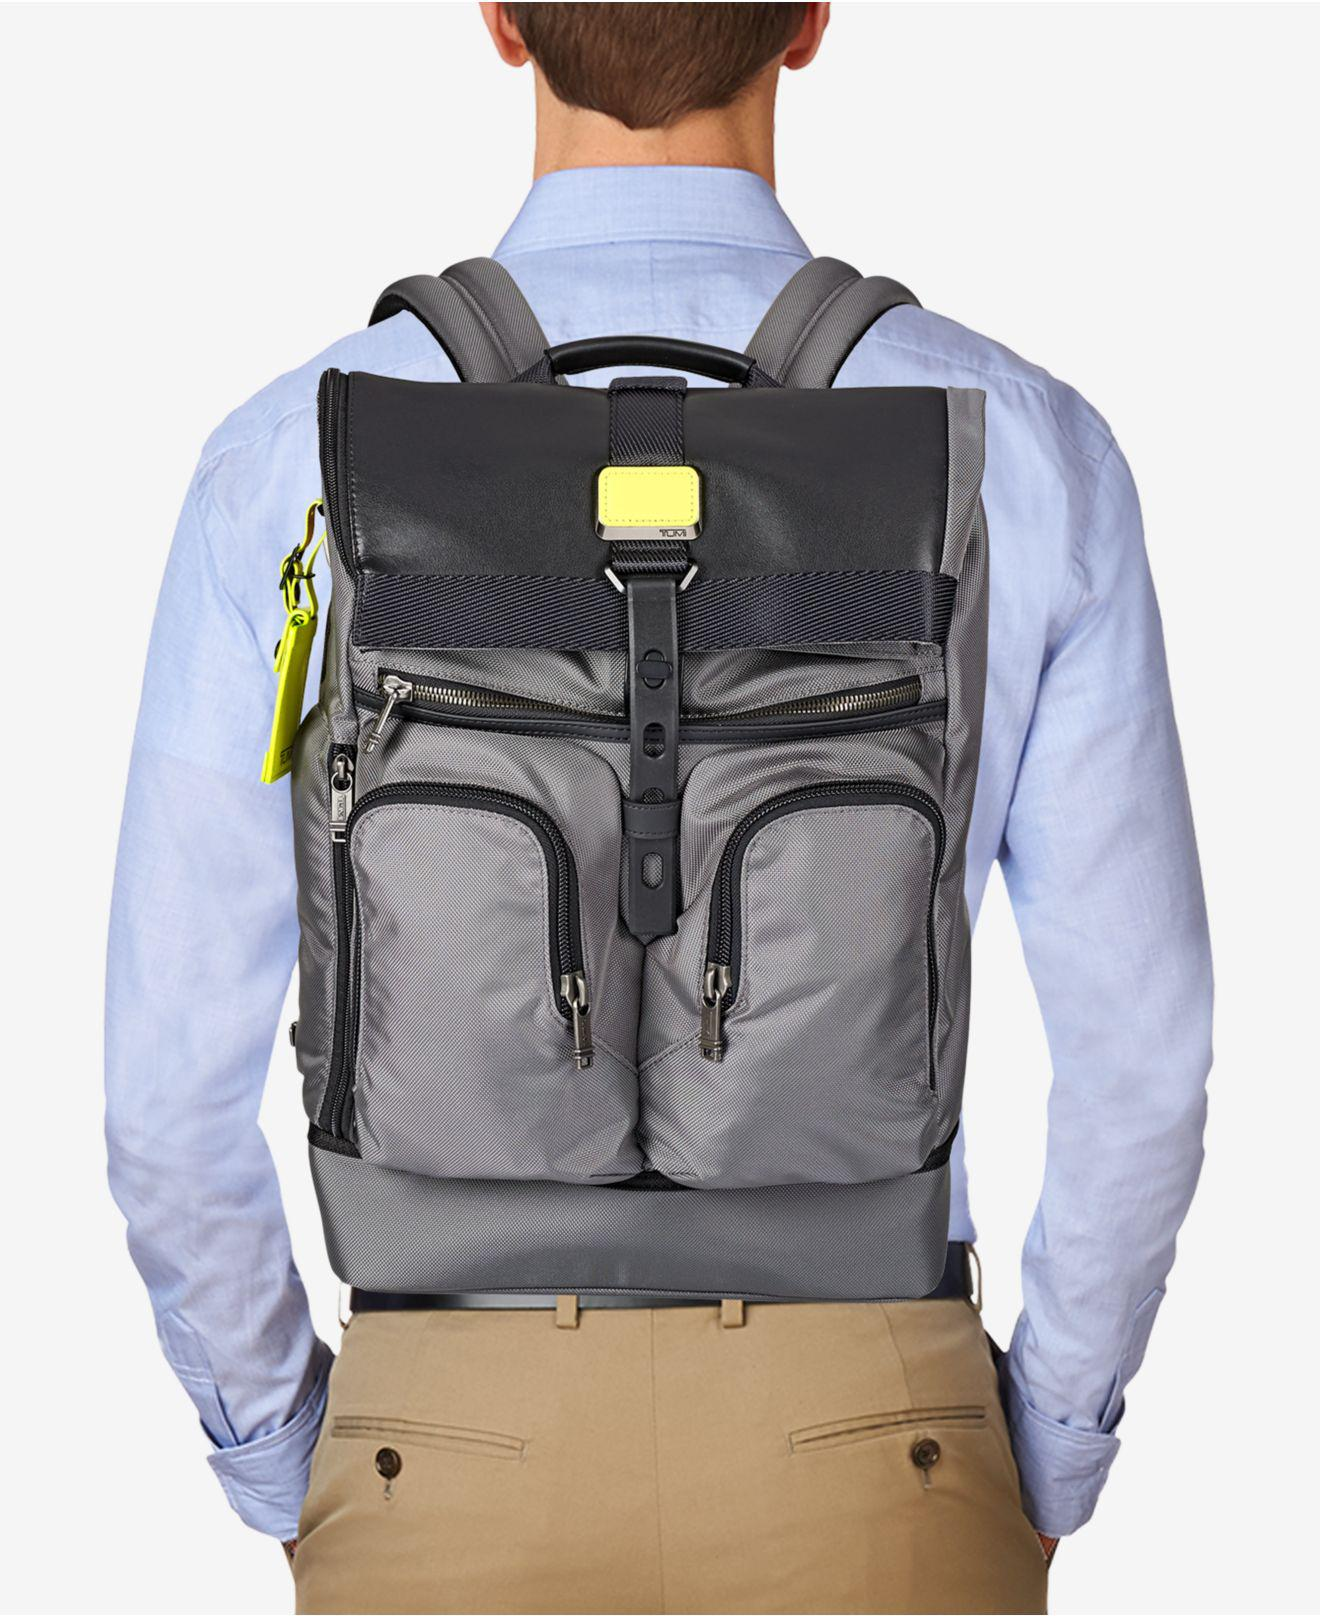 a1845fd3cd Lyst - Tumi Alpha Bravo London Roll-top Backpack in Gray for Men